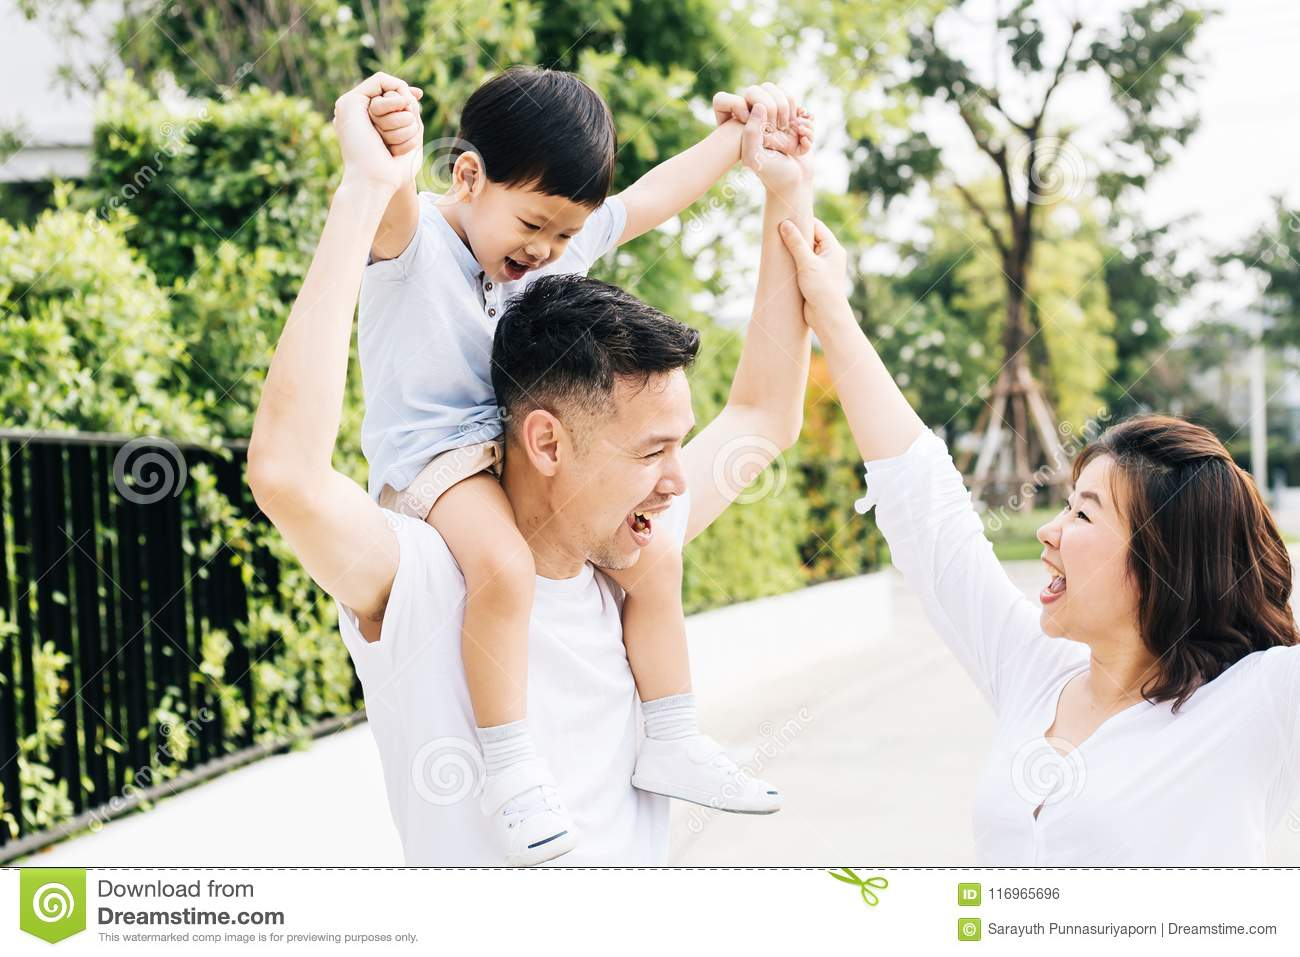 Cute Asian father piggybacking his son along with his wife in the park. Excited family raising hands together with happiness.